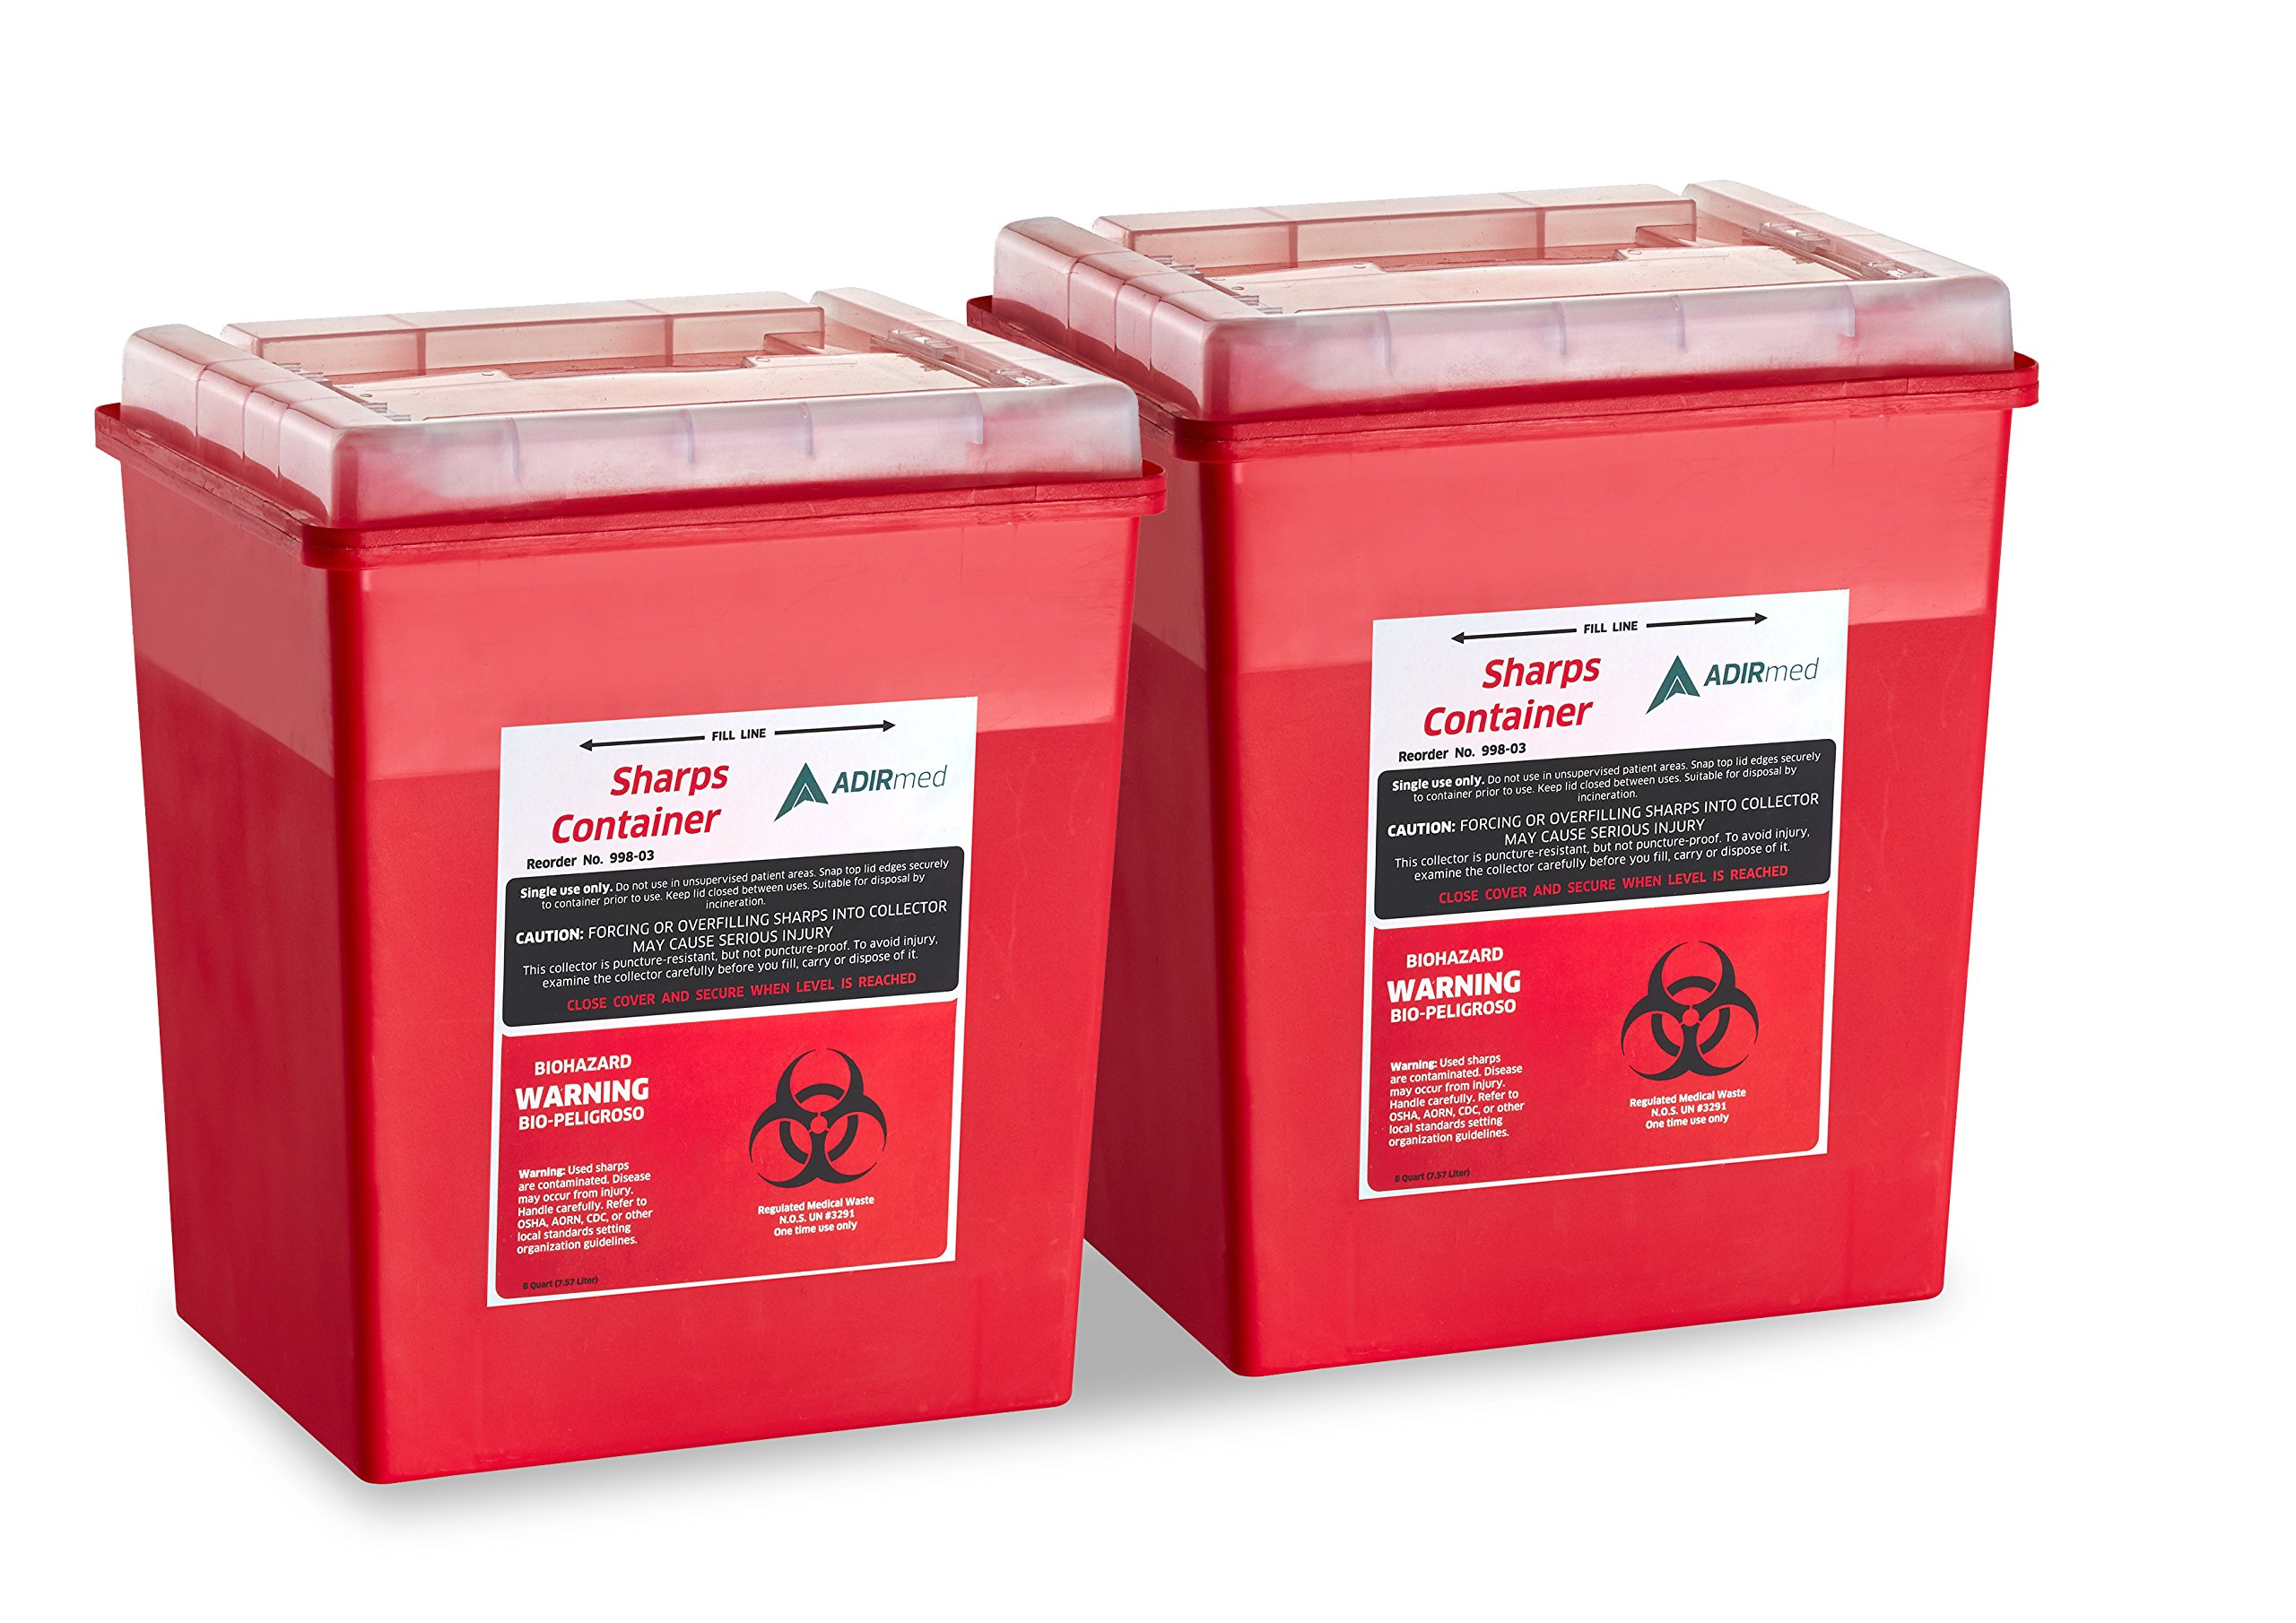 AdirMed Sharps & Needle Biohazard Disposal Container - 8 Quart - Flip-Open Lid - 2 Pack by Adir Med